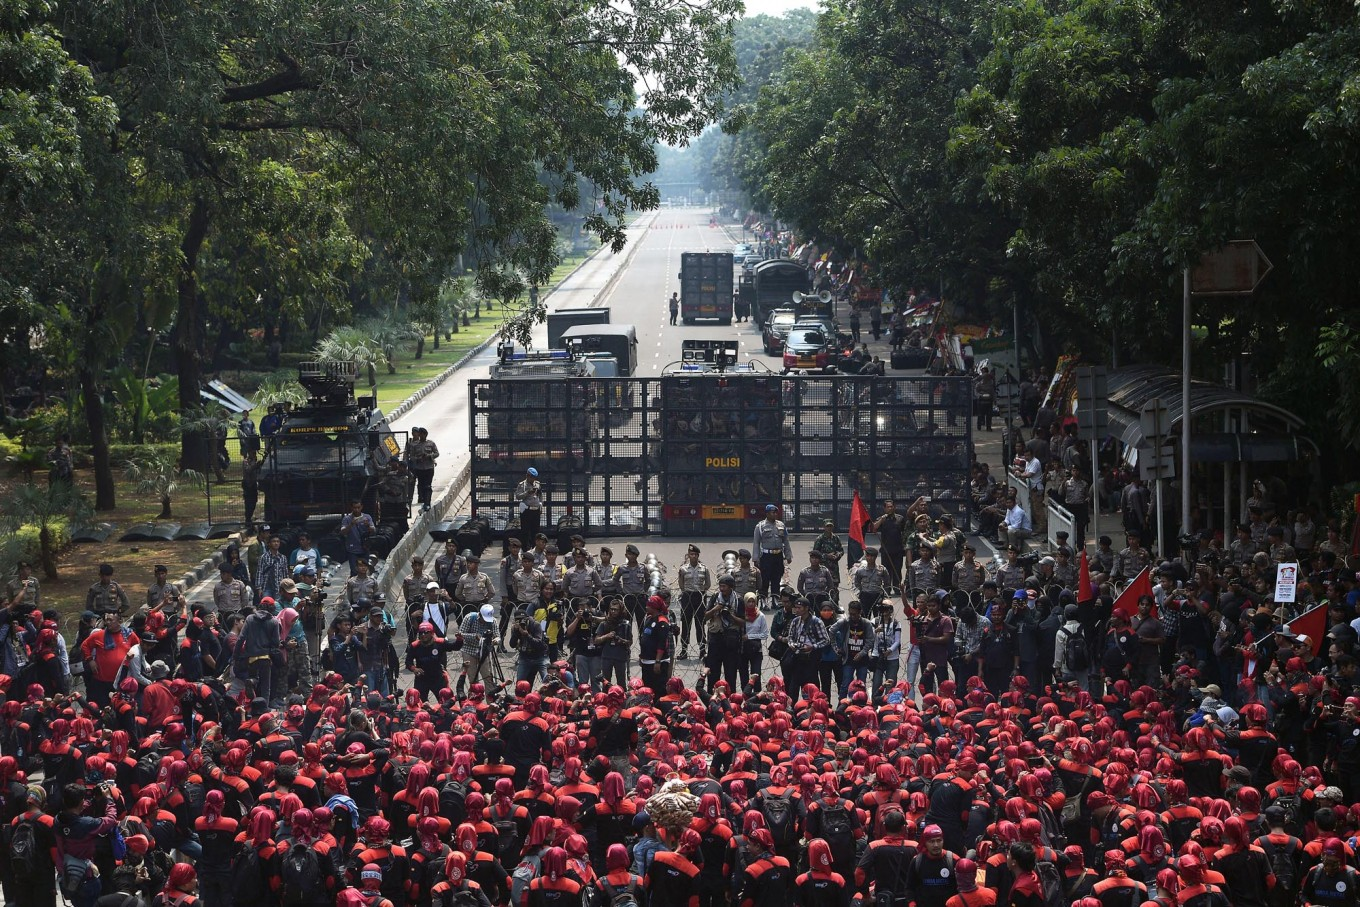 May Day march to concentrate on Monas area